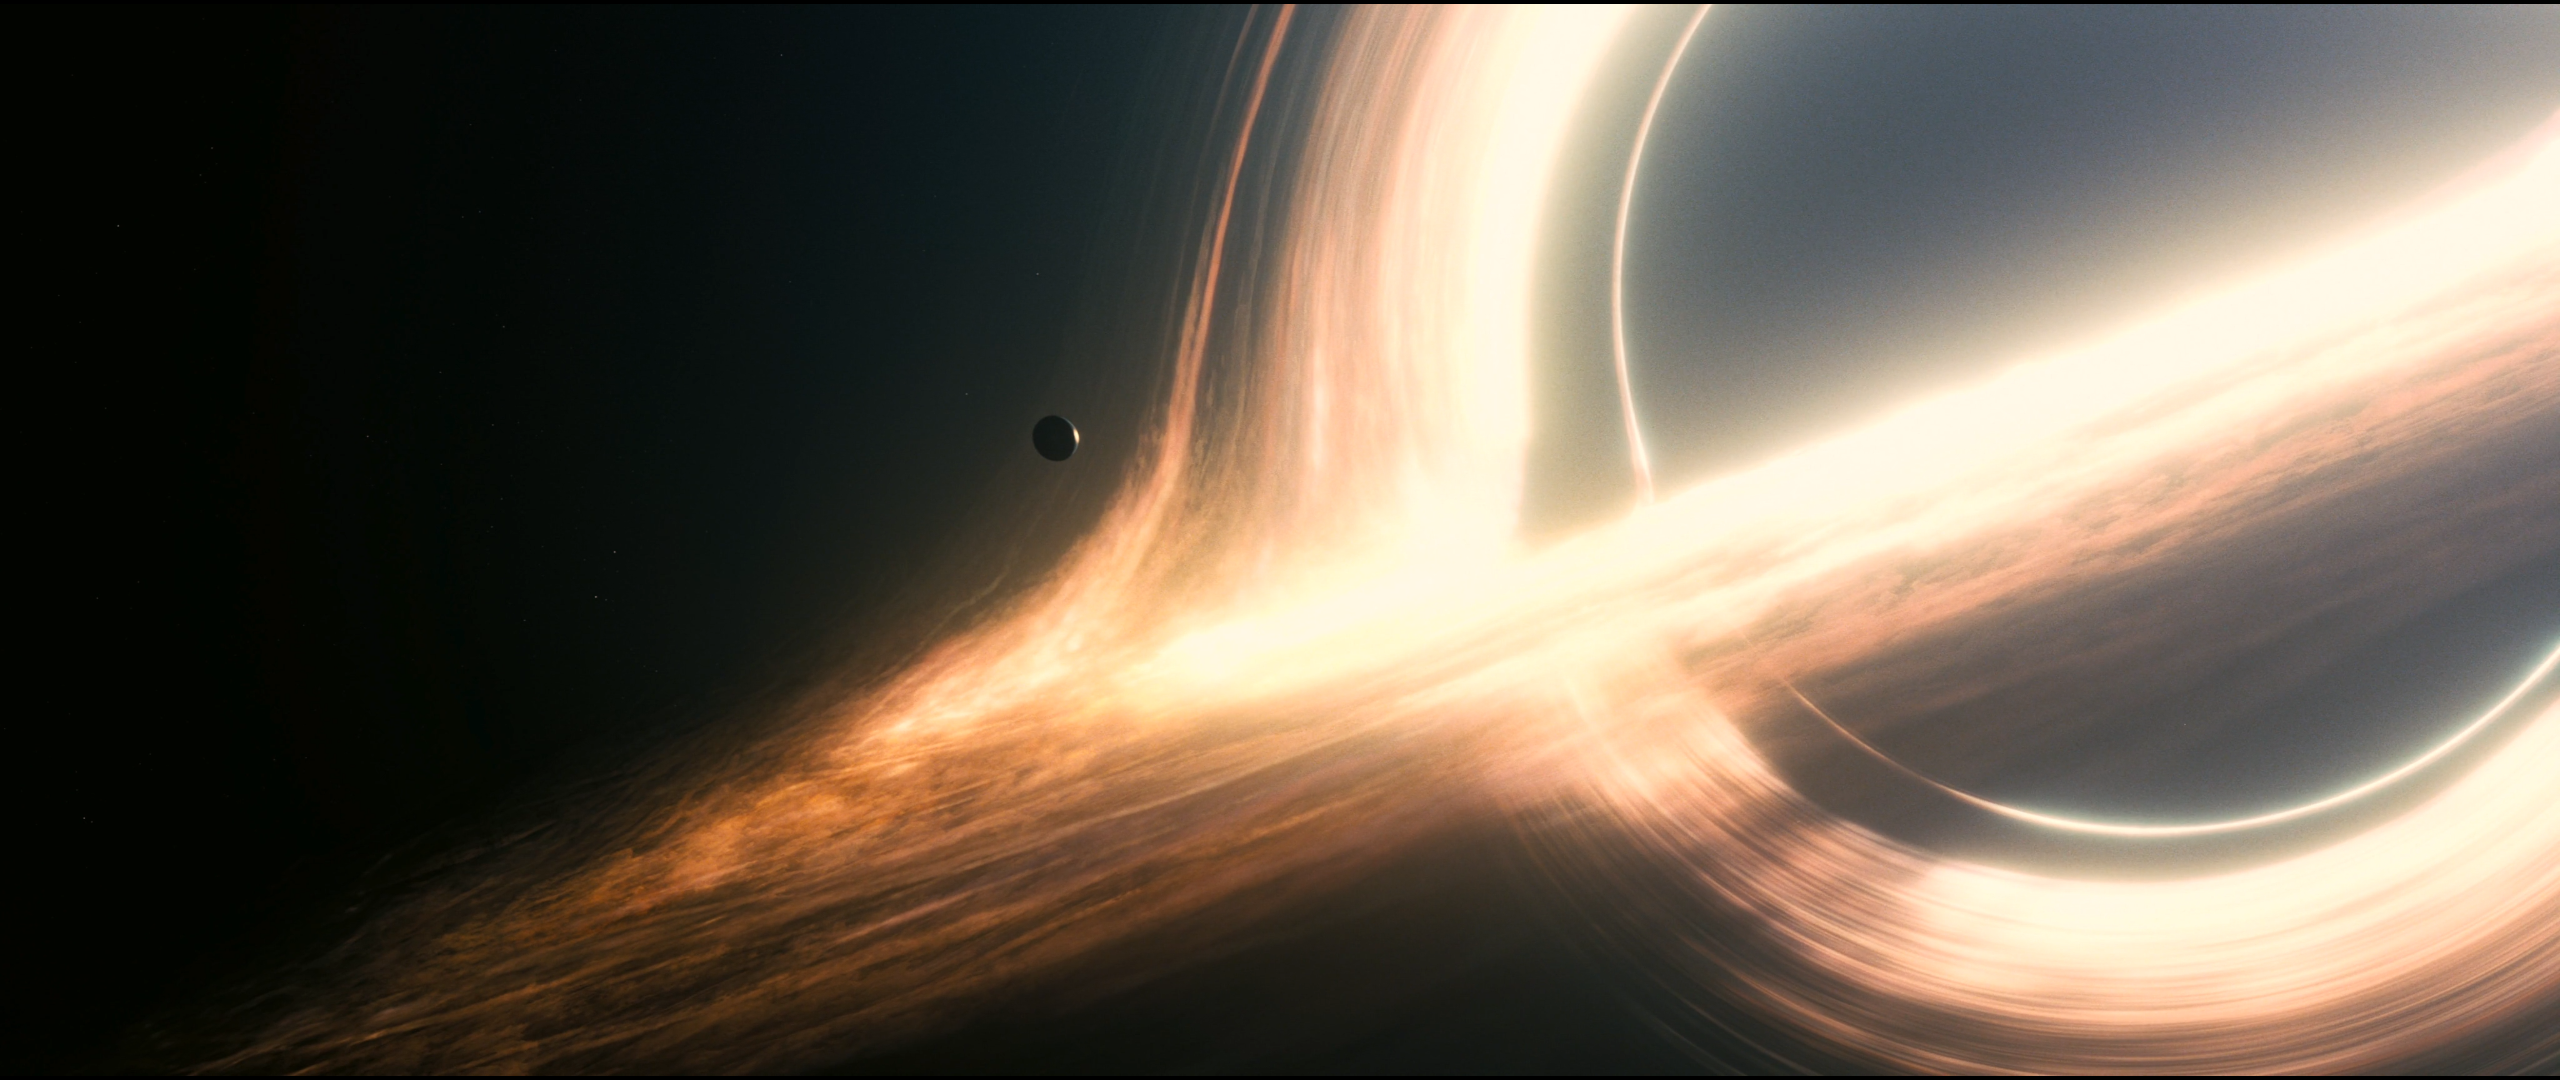 Interstellar Blackhole 2 Wallpaper 2560 x 1080 by ABAthedude 2560x1080